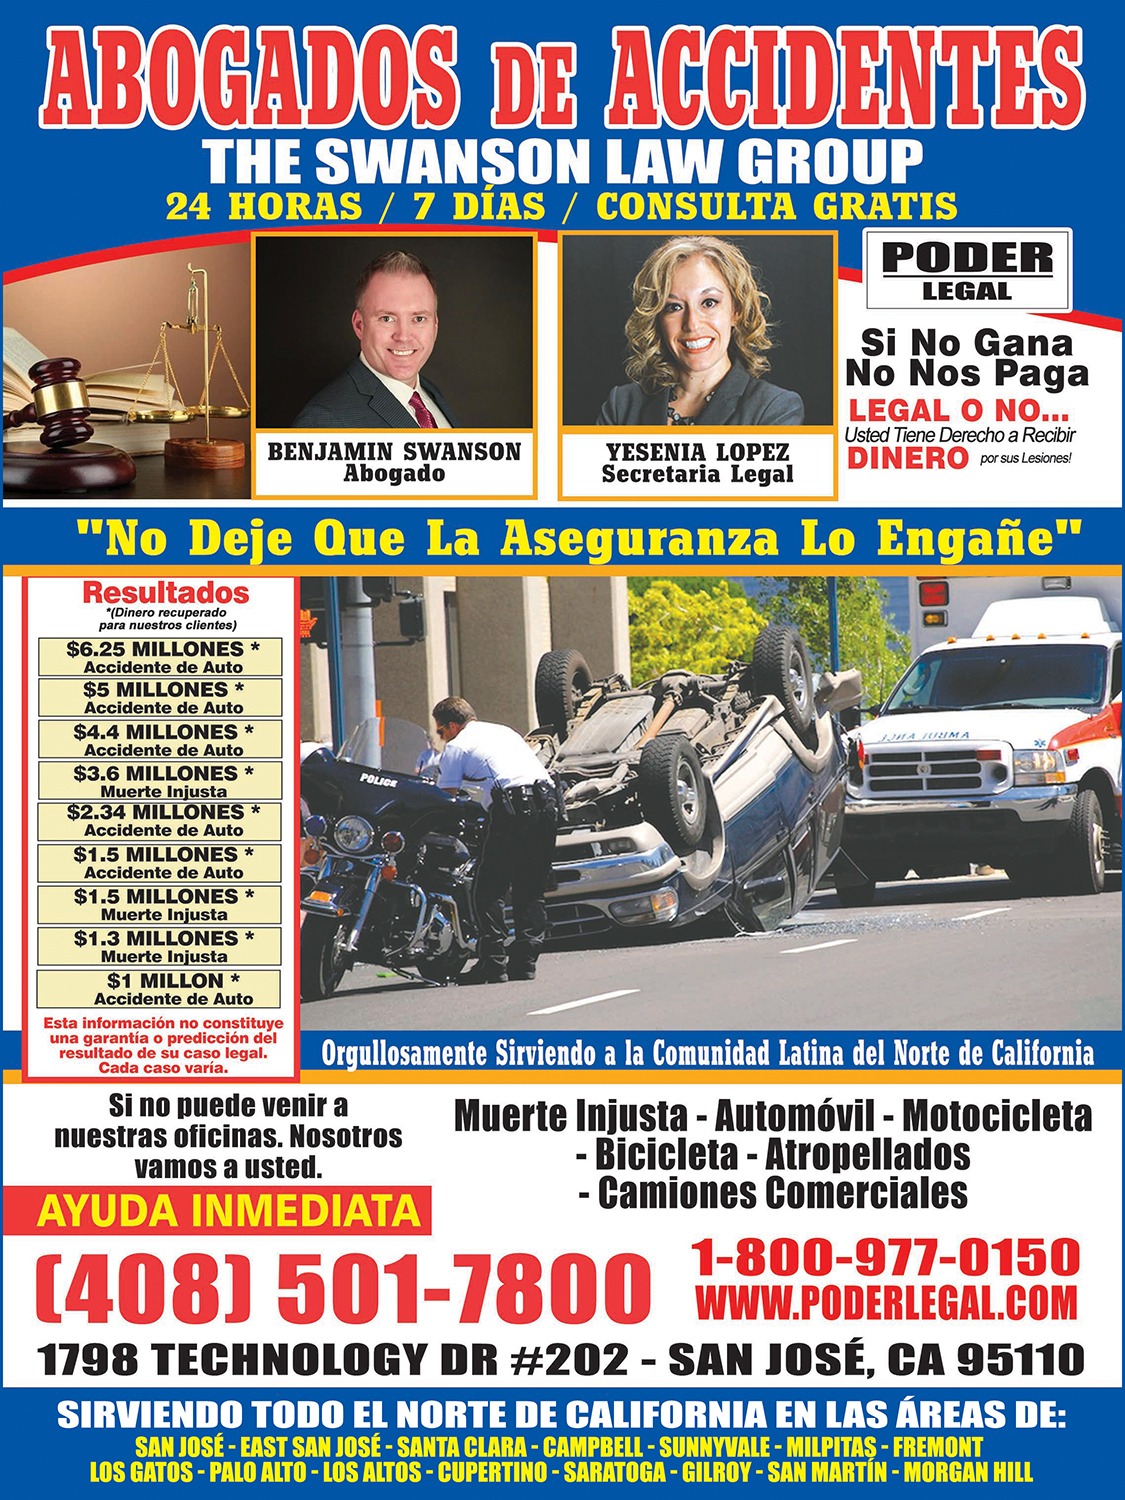 The Swanson Law Group 1 Pag GLOSSY- DICIEMBRE 2018.jpg